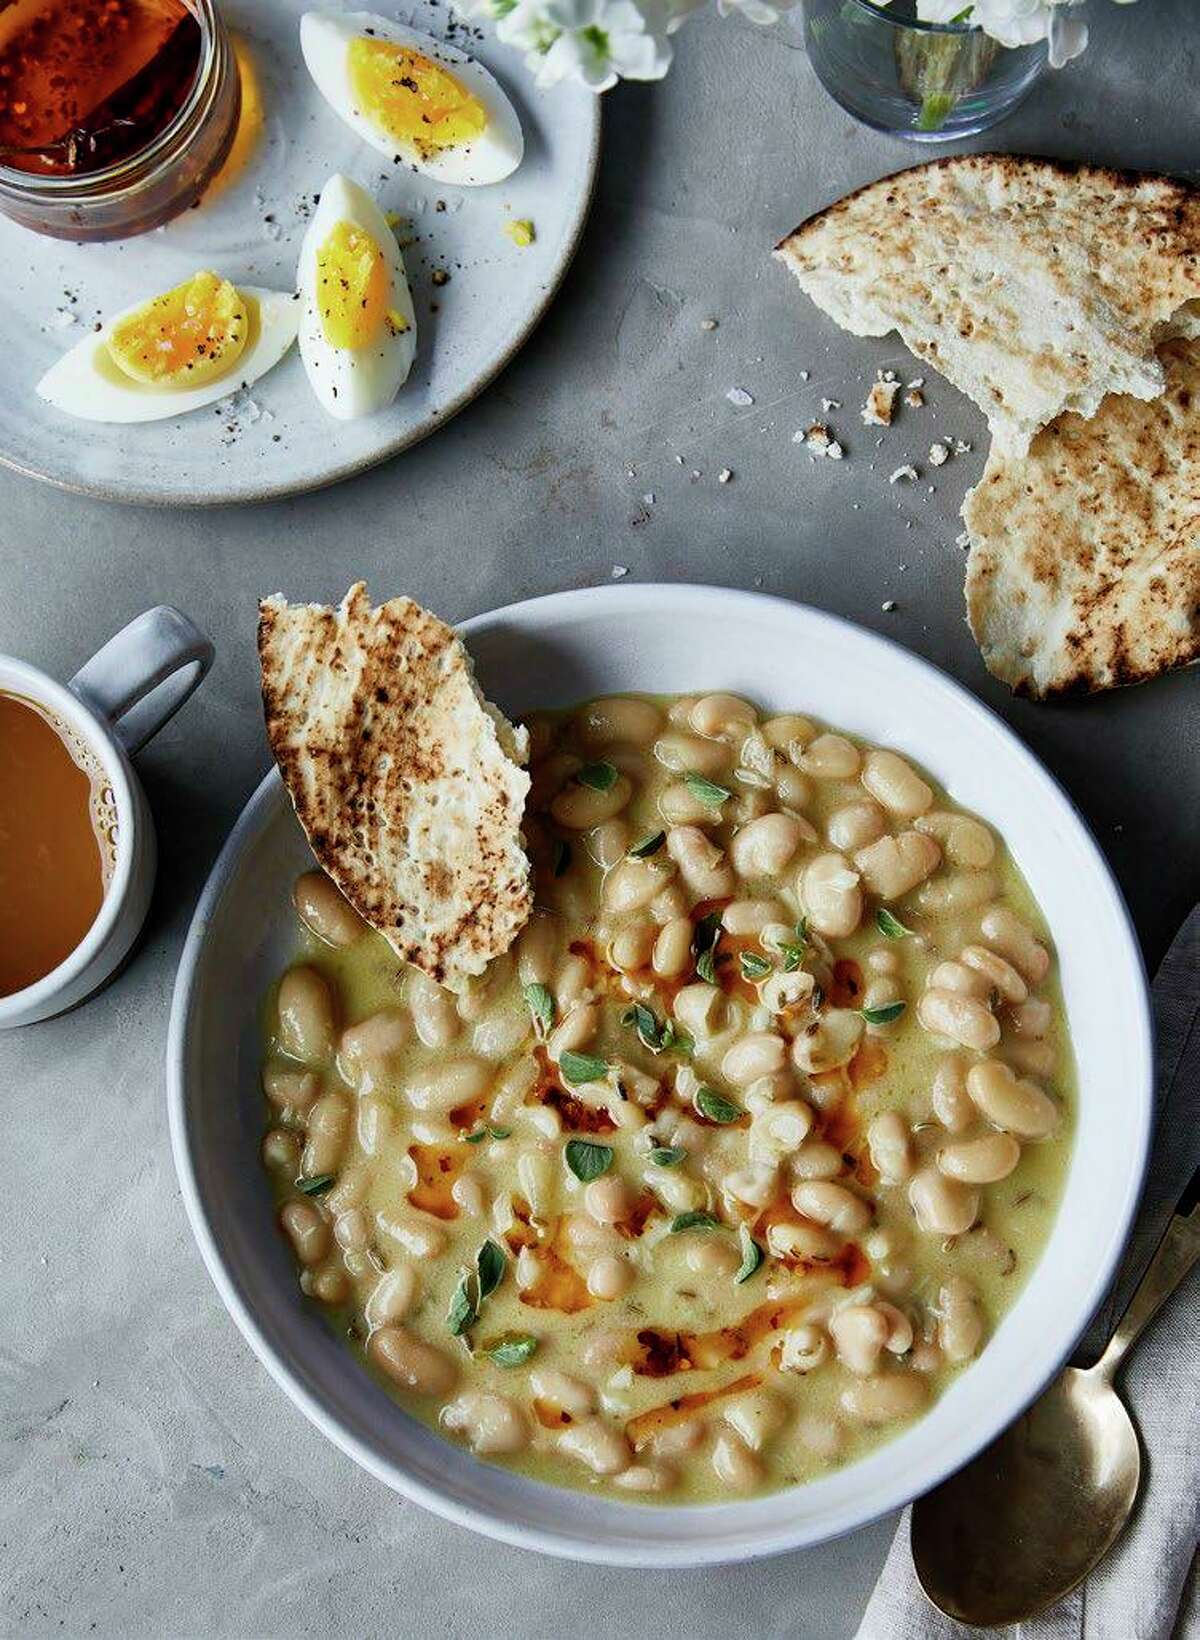 """Fool's Ful, a recipe for a cannellini bean stew, can be found in """"Kitchen Remix"""" by Charlotte Druckman."""